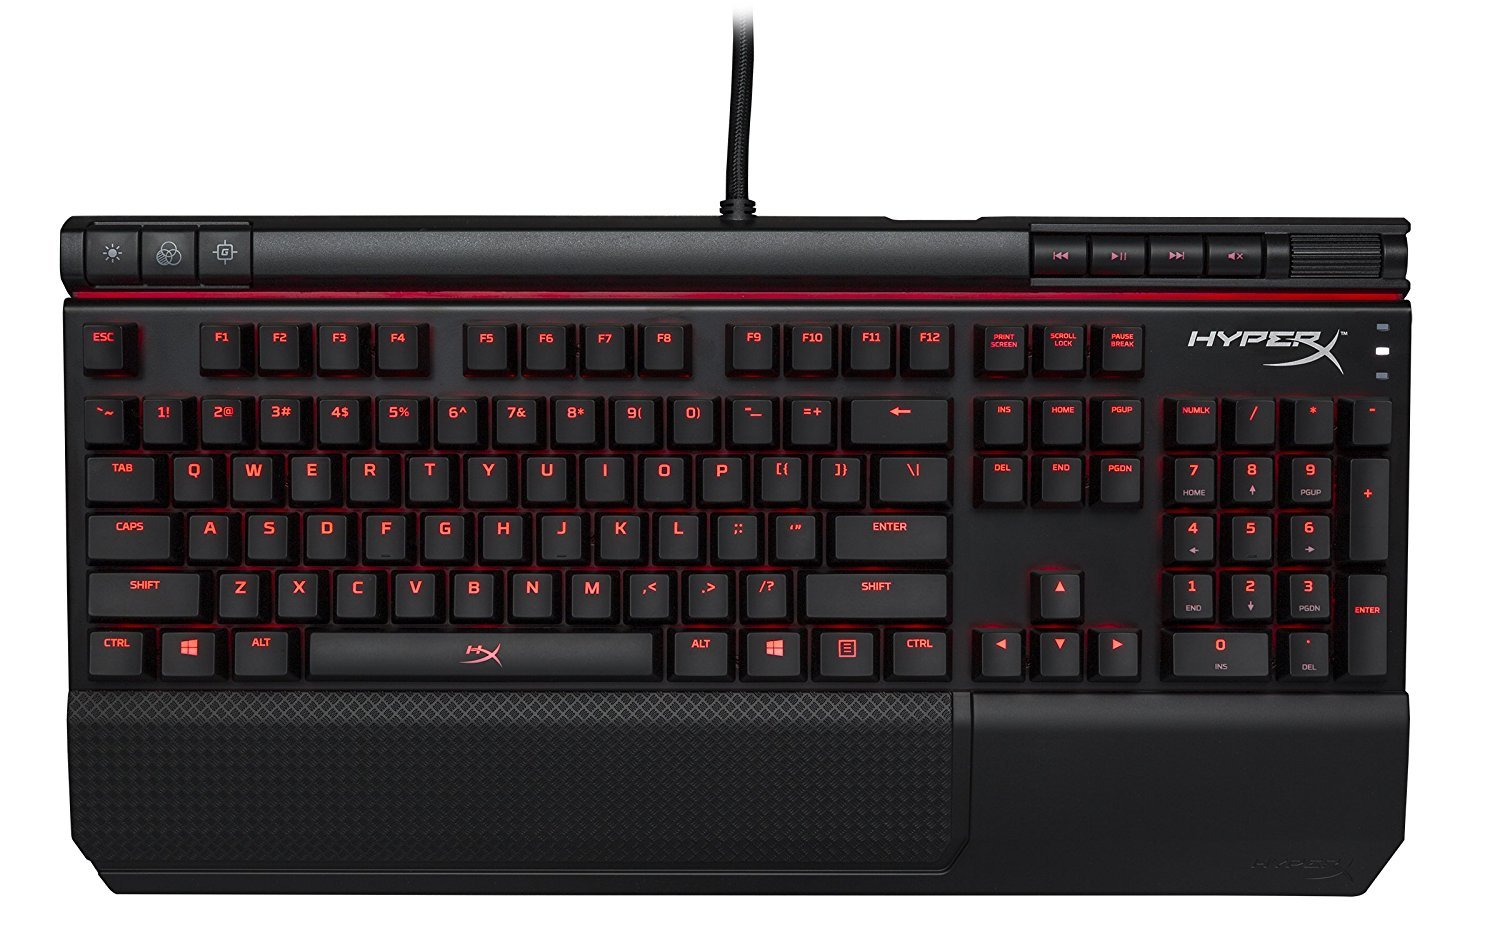 HyperX Alloy Elite - Mechanical Gaming Keyboard - Radiant Light Bar - Wrist Rest & Gaming Keycaps Included - Media Controls - Linear & Quiet - Cherry MX Red - Red LED Backlit (HX-KB2RD1-US/R1)